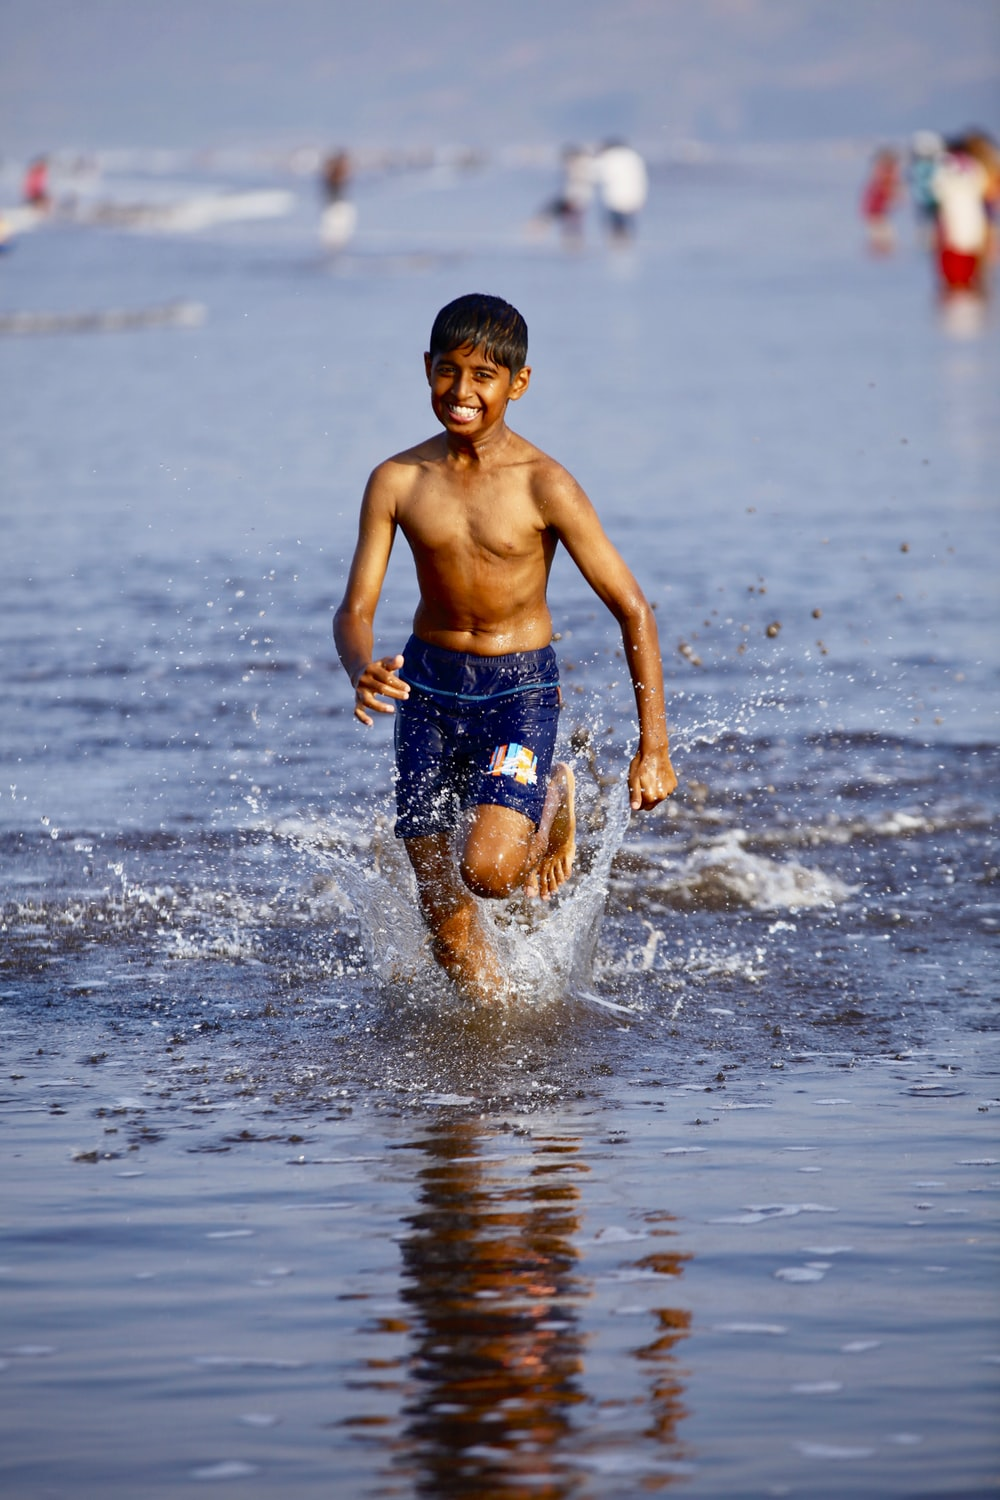 boys in blue shorts running in water